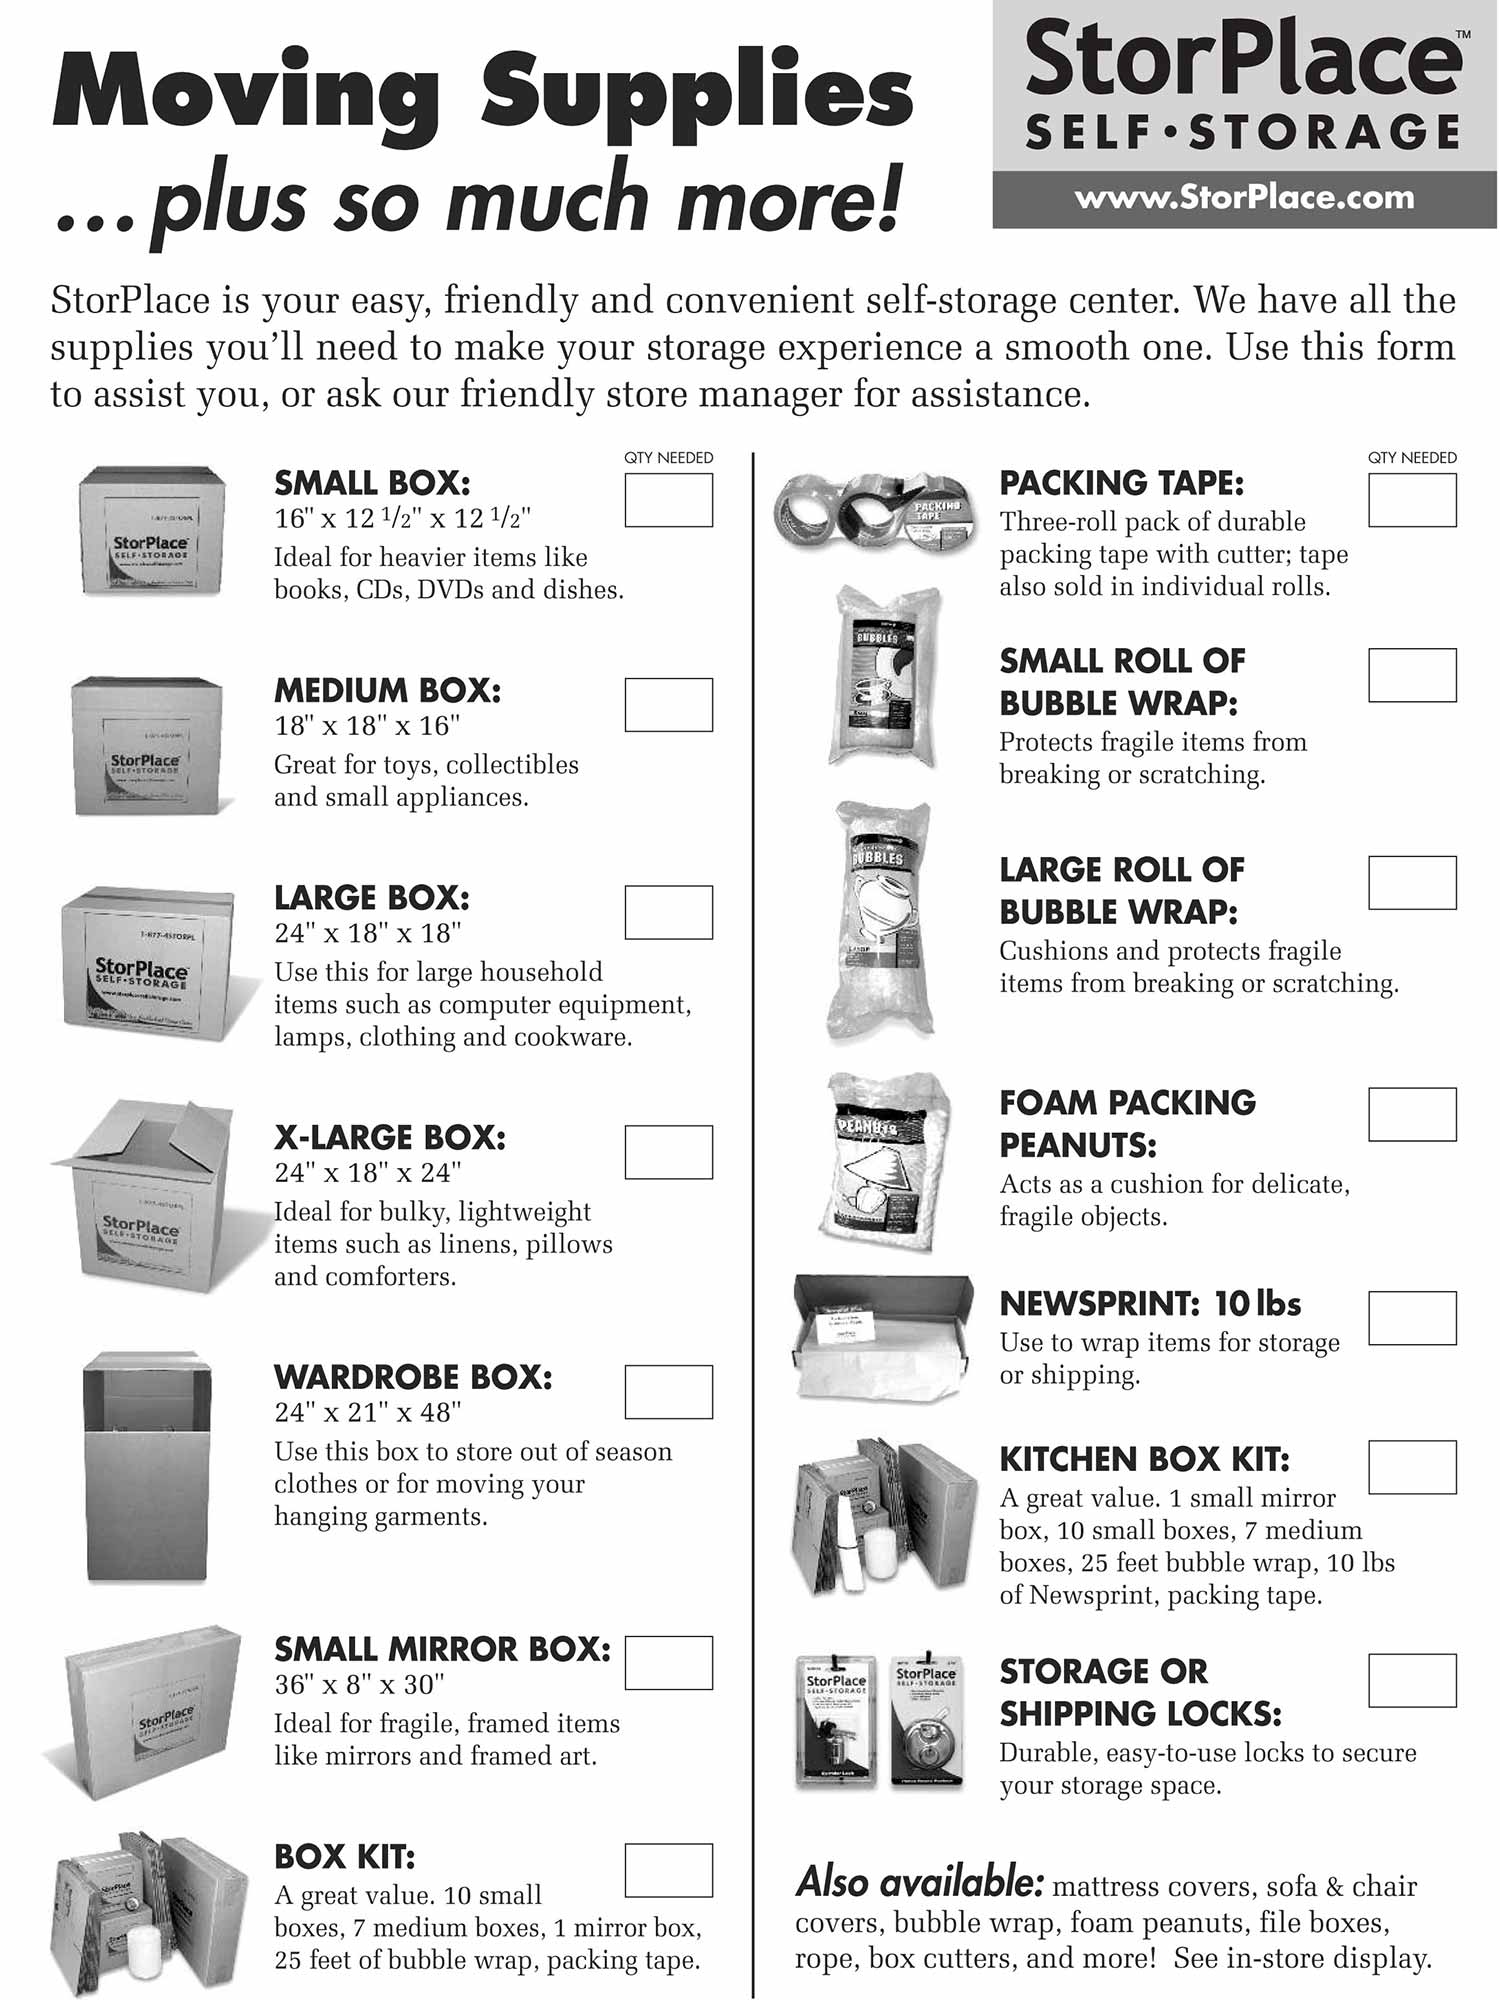 Moving supplies checklist